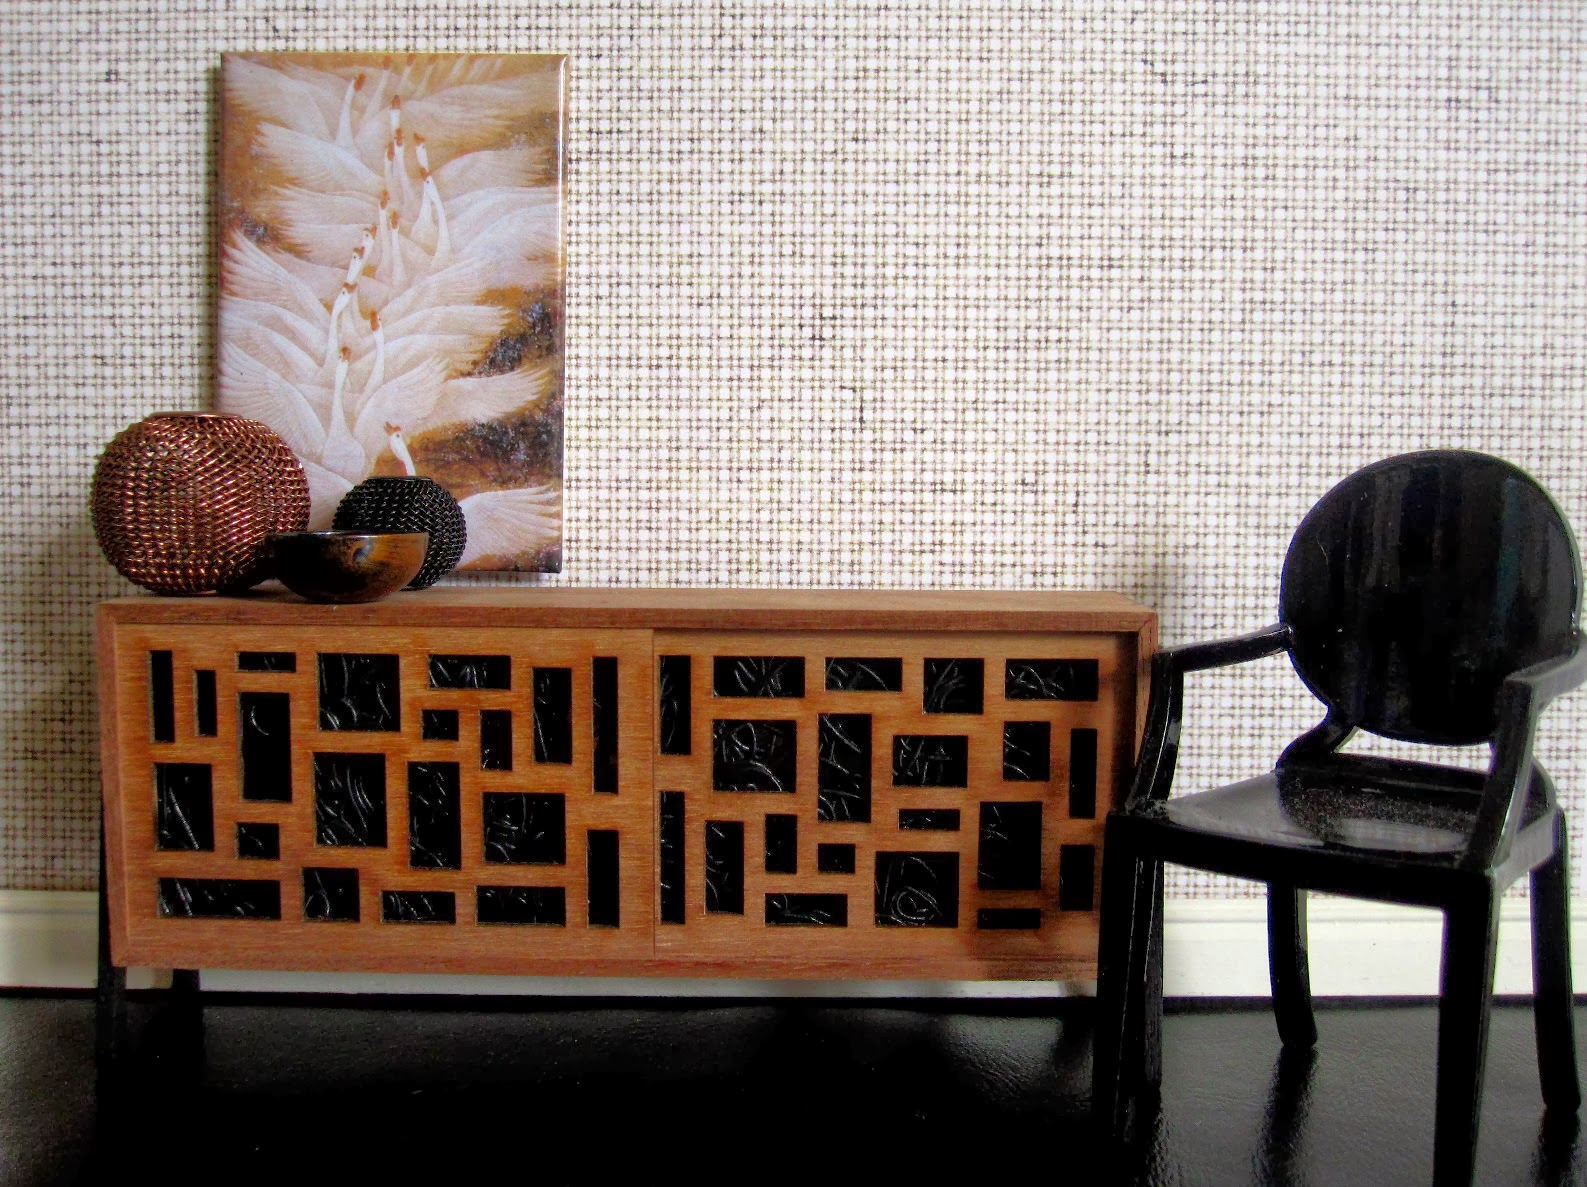 Modern miniature scene with mid-century sideboard, black ghost chair and chinese print of geese in colours of brown and black